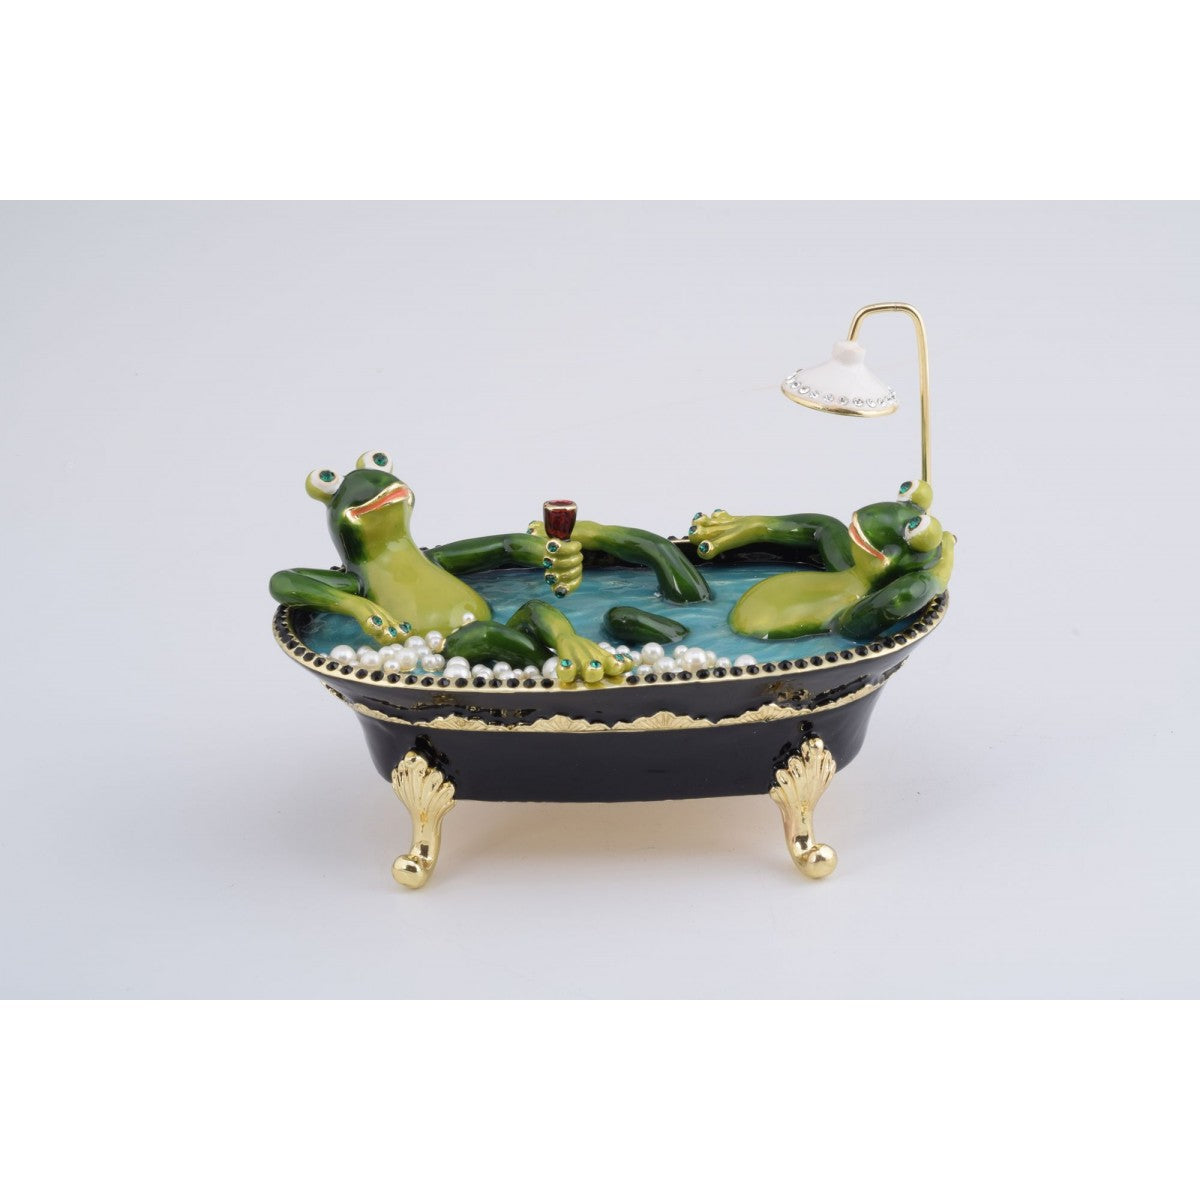 Frogs Bath Trinket Box by Keren Kopal